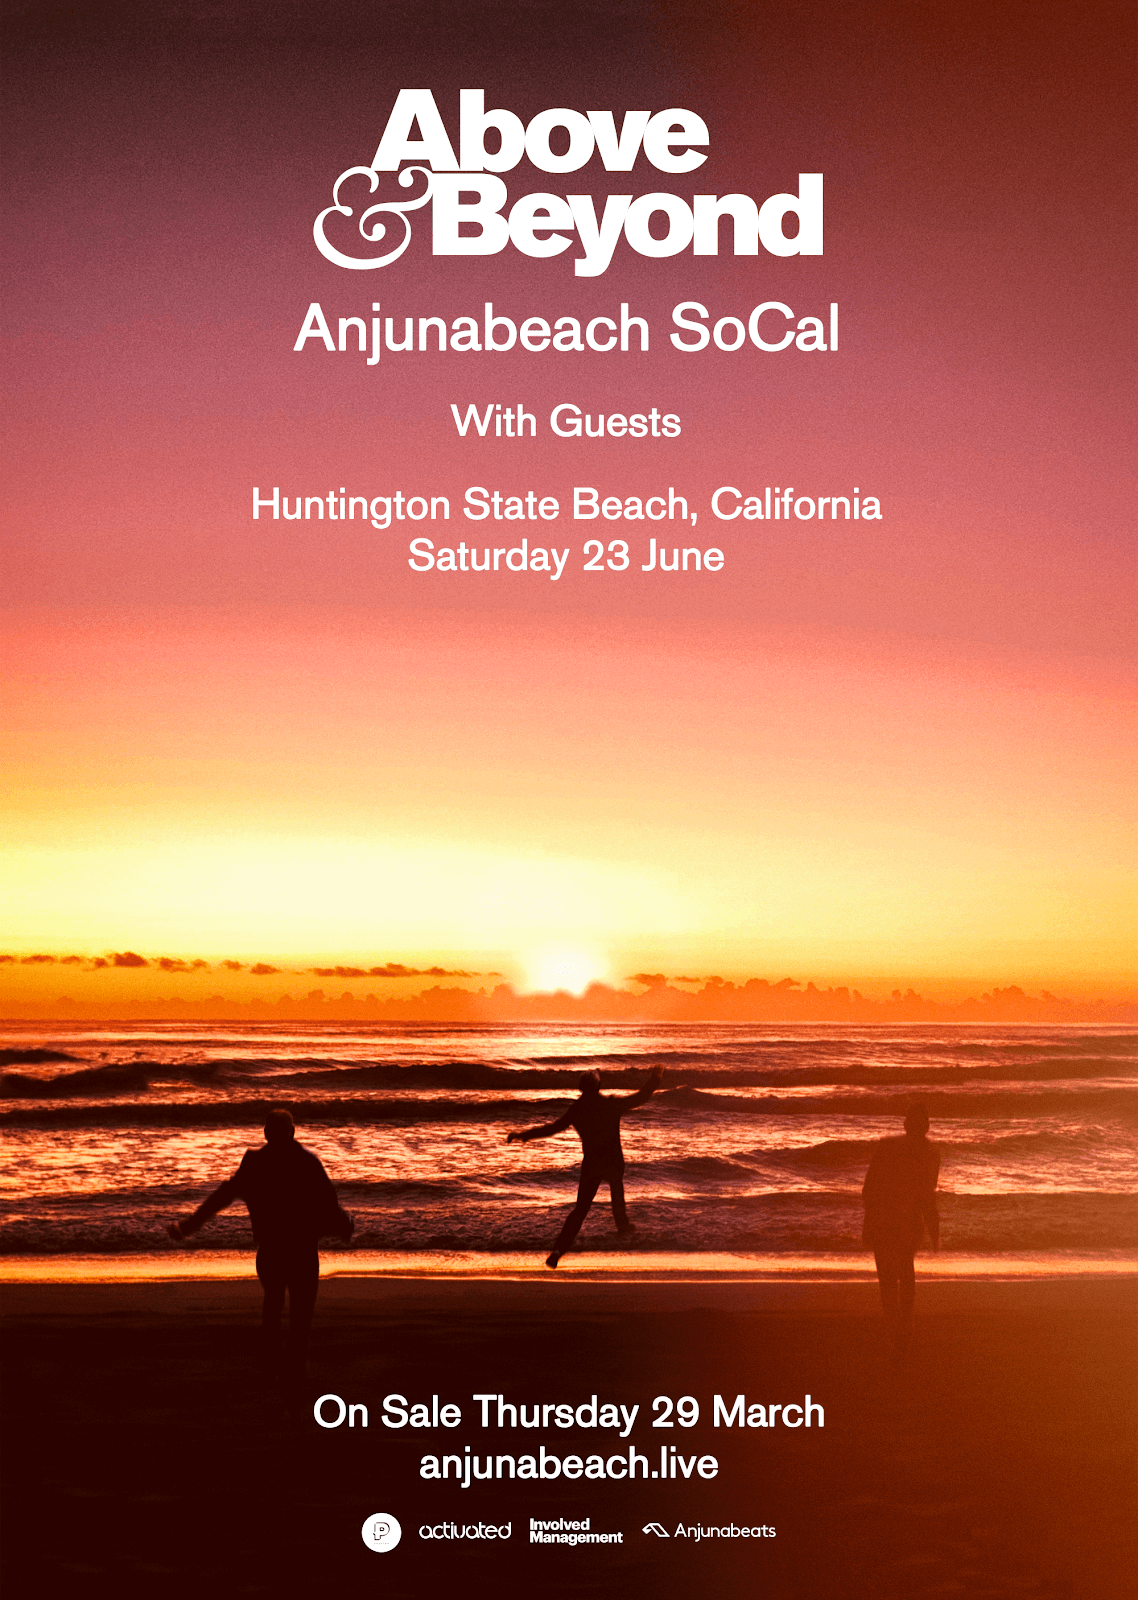 Above & Beyond presents Anjunabeach SoCal Festival @ Huntington State Beach, California, US on 23rd of June 2018